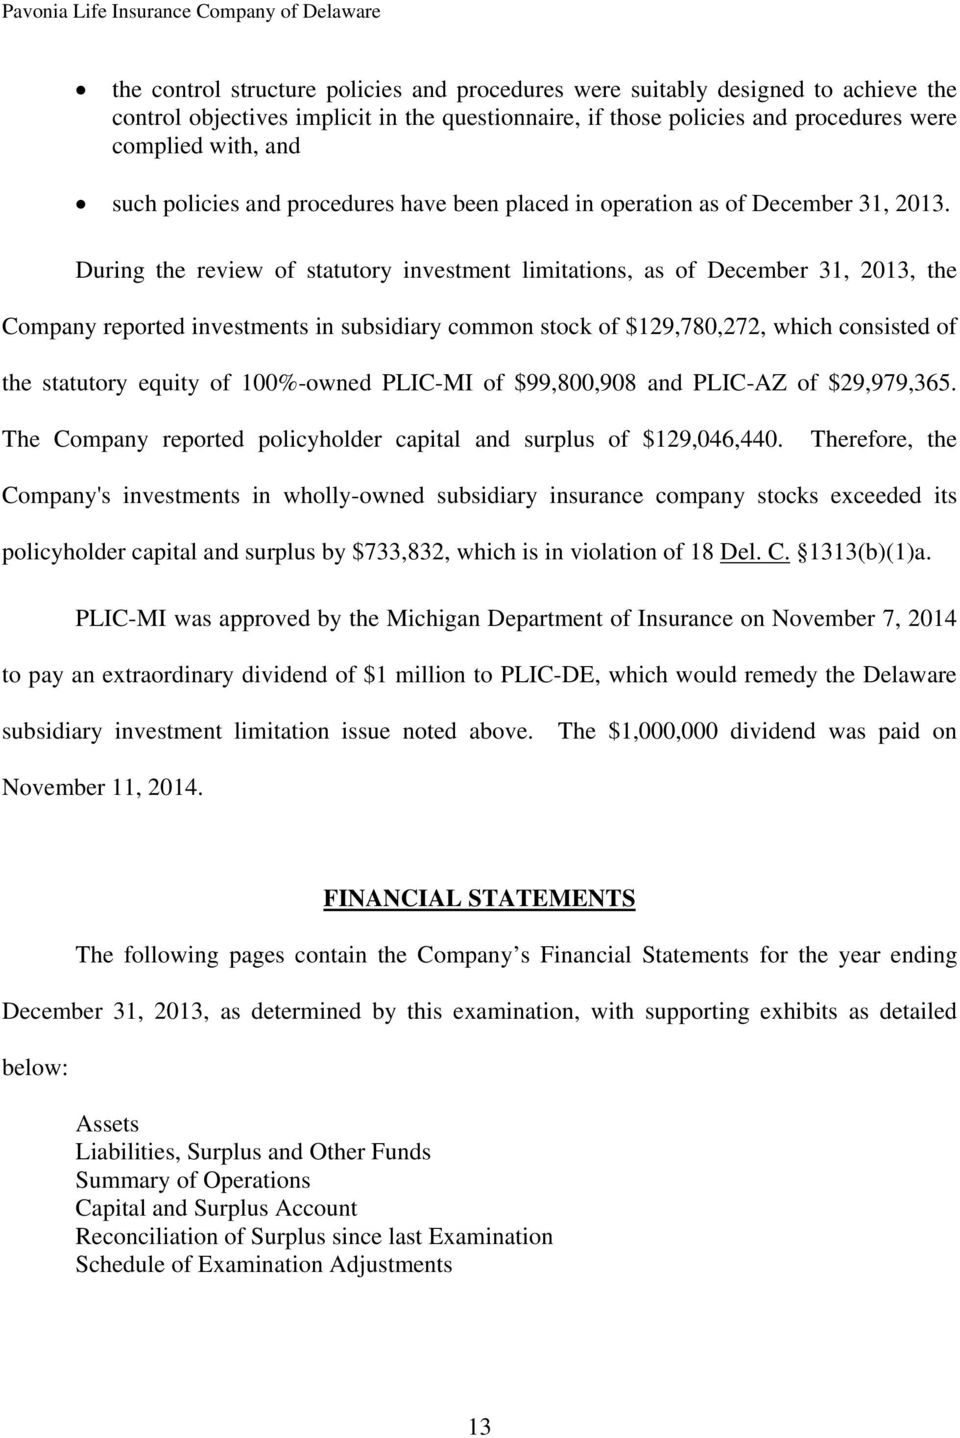 During the review of statutory investment limitations, as of December 31, 2013, the Company reported investments in subsidiary common stock of $129,780,272, which consisted of the statutory equity of